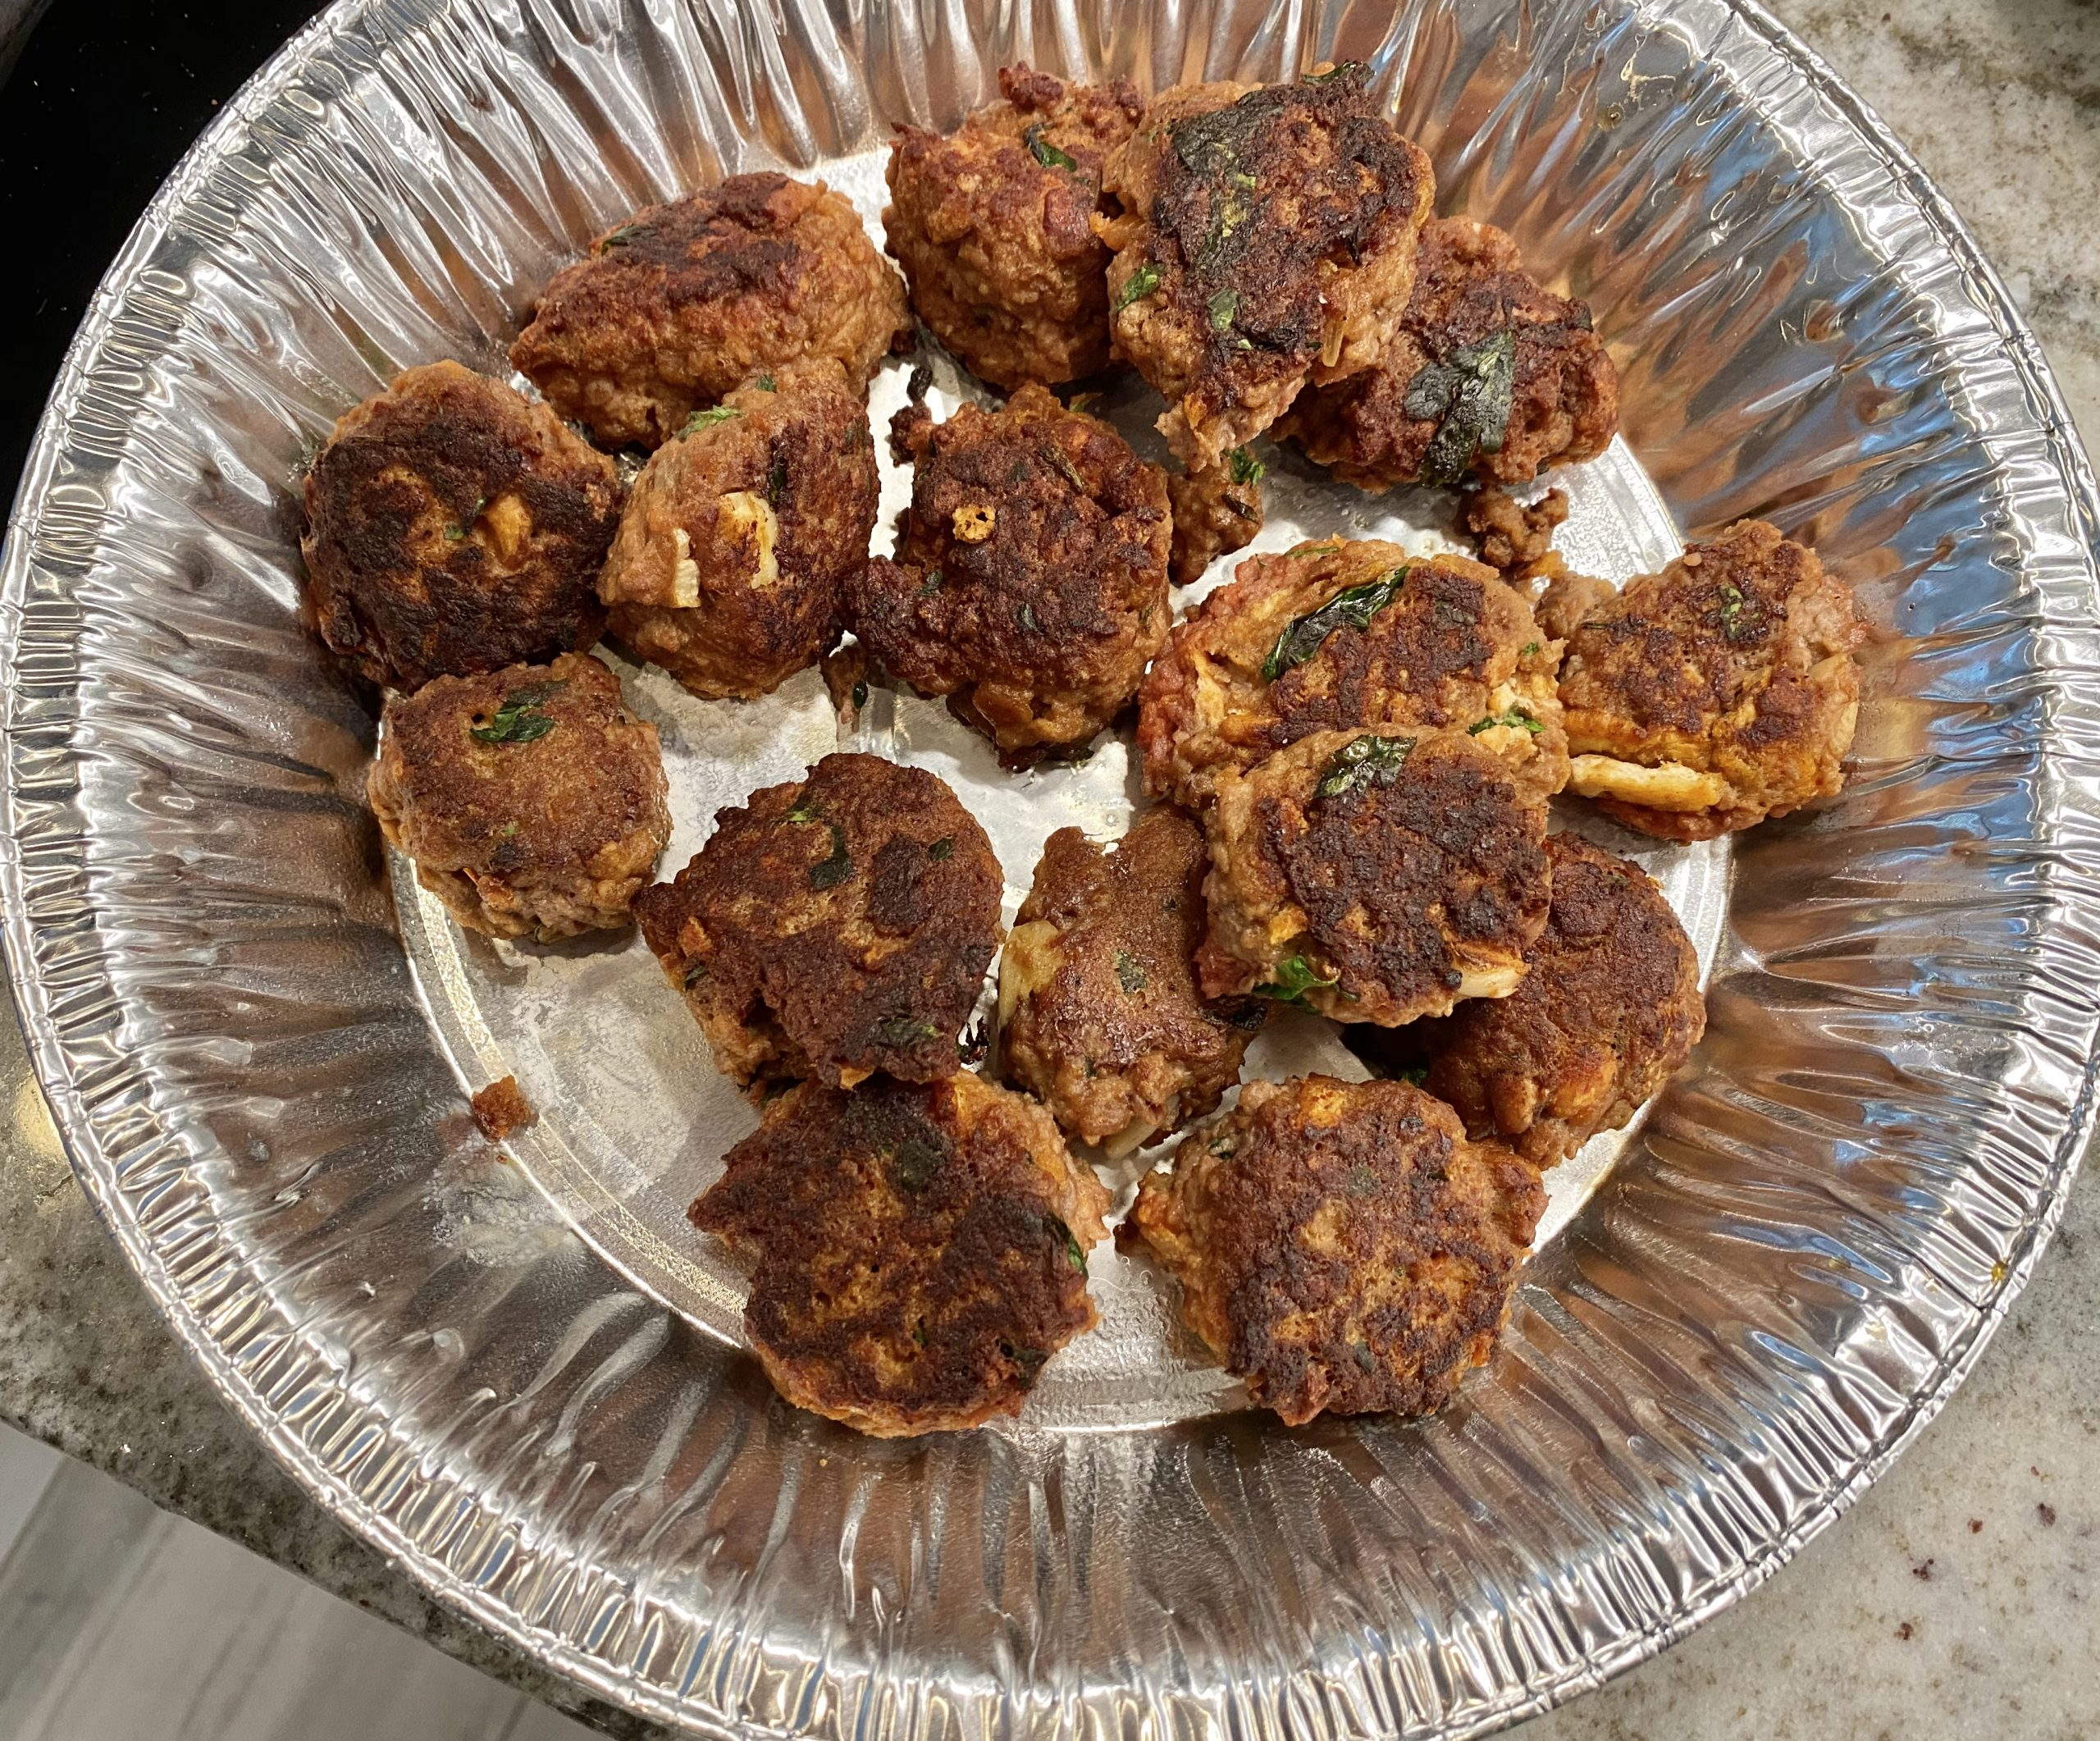 Meatless Meatballs that will tickle your tastebuds